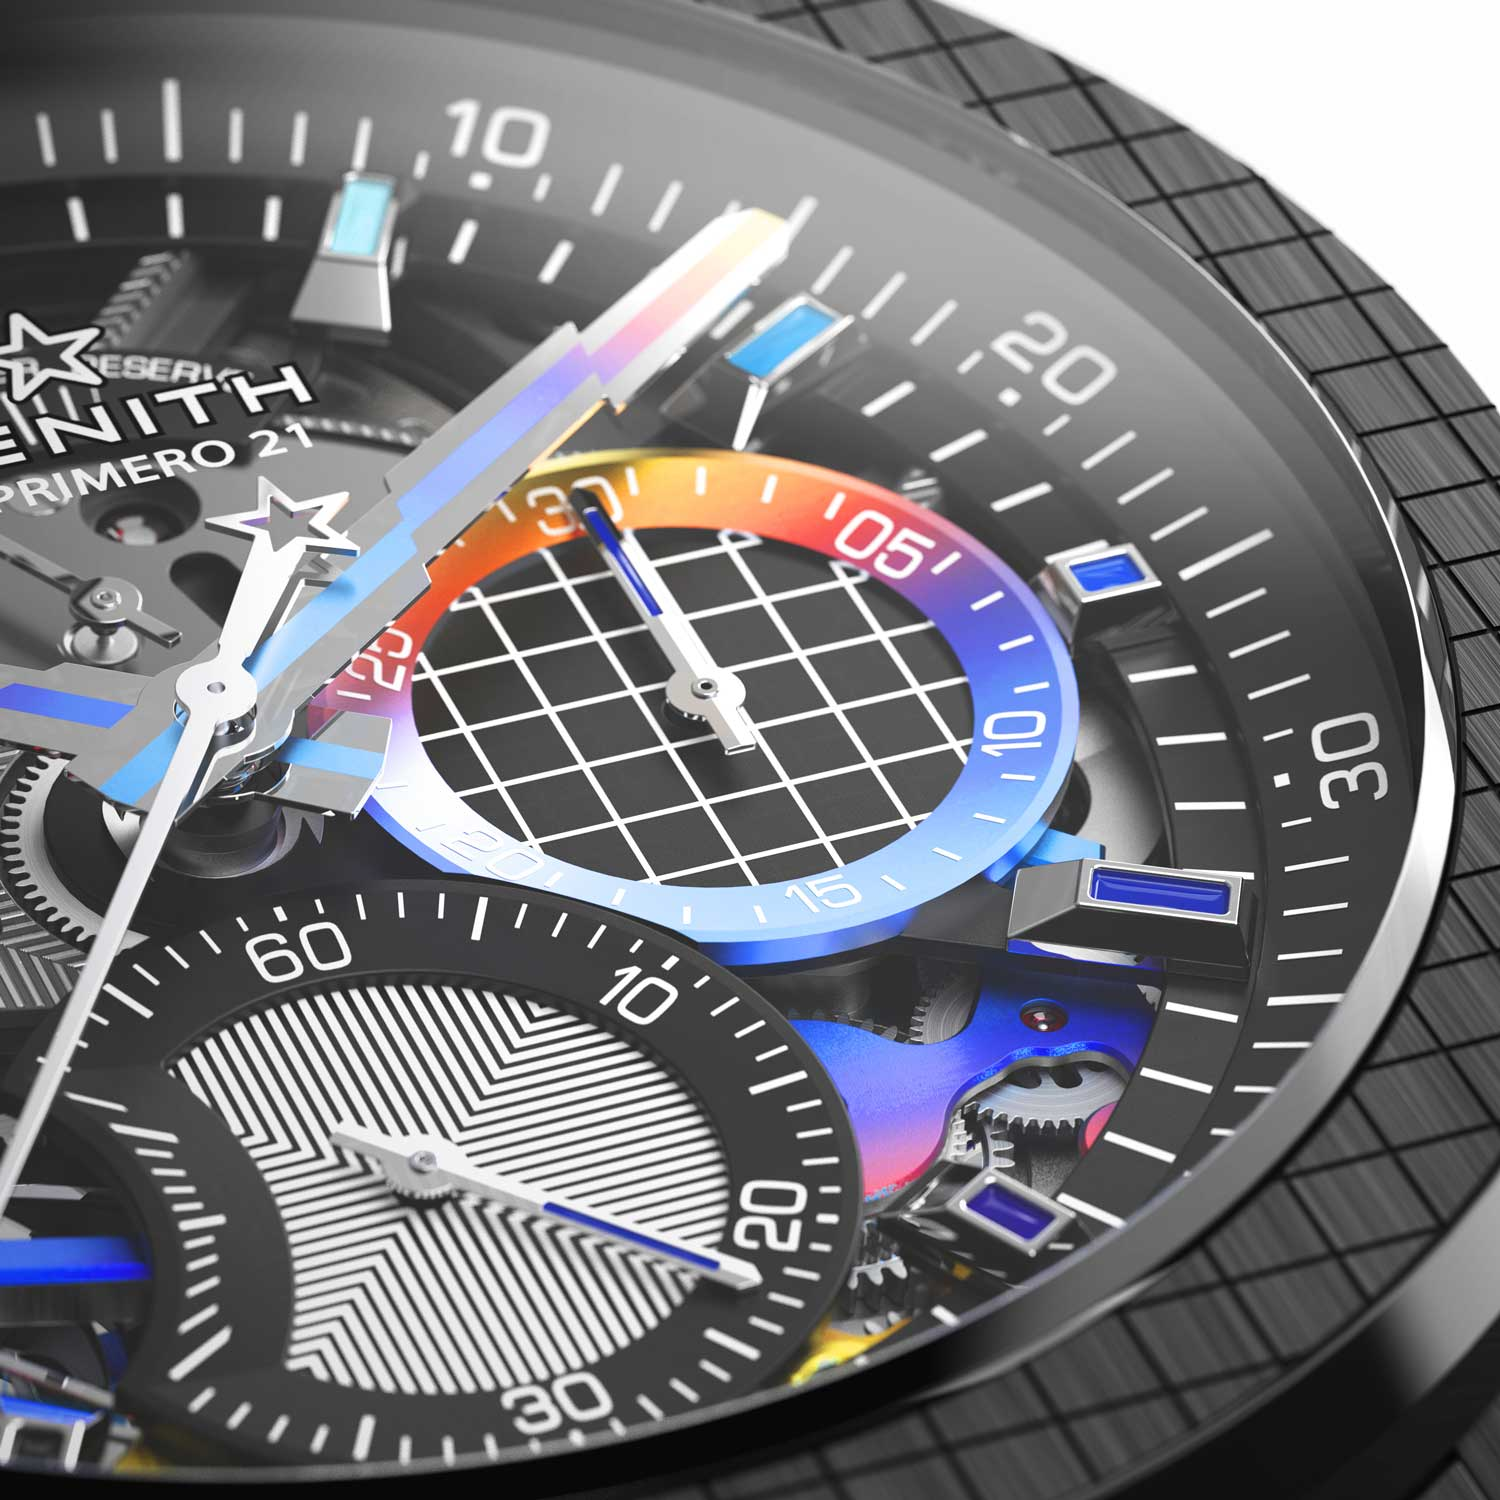 Felip has used his signature moiré optical illusion with thin alternating white and black bands on the top bridges and parts of the dial.